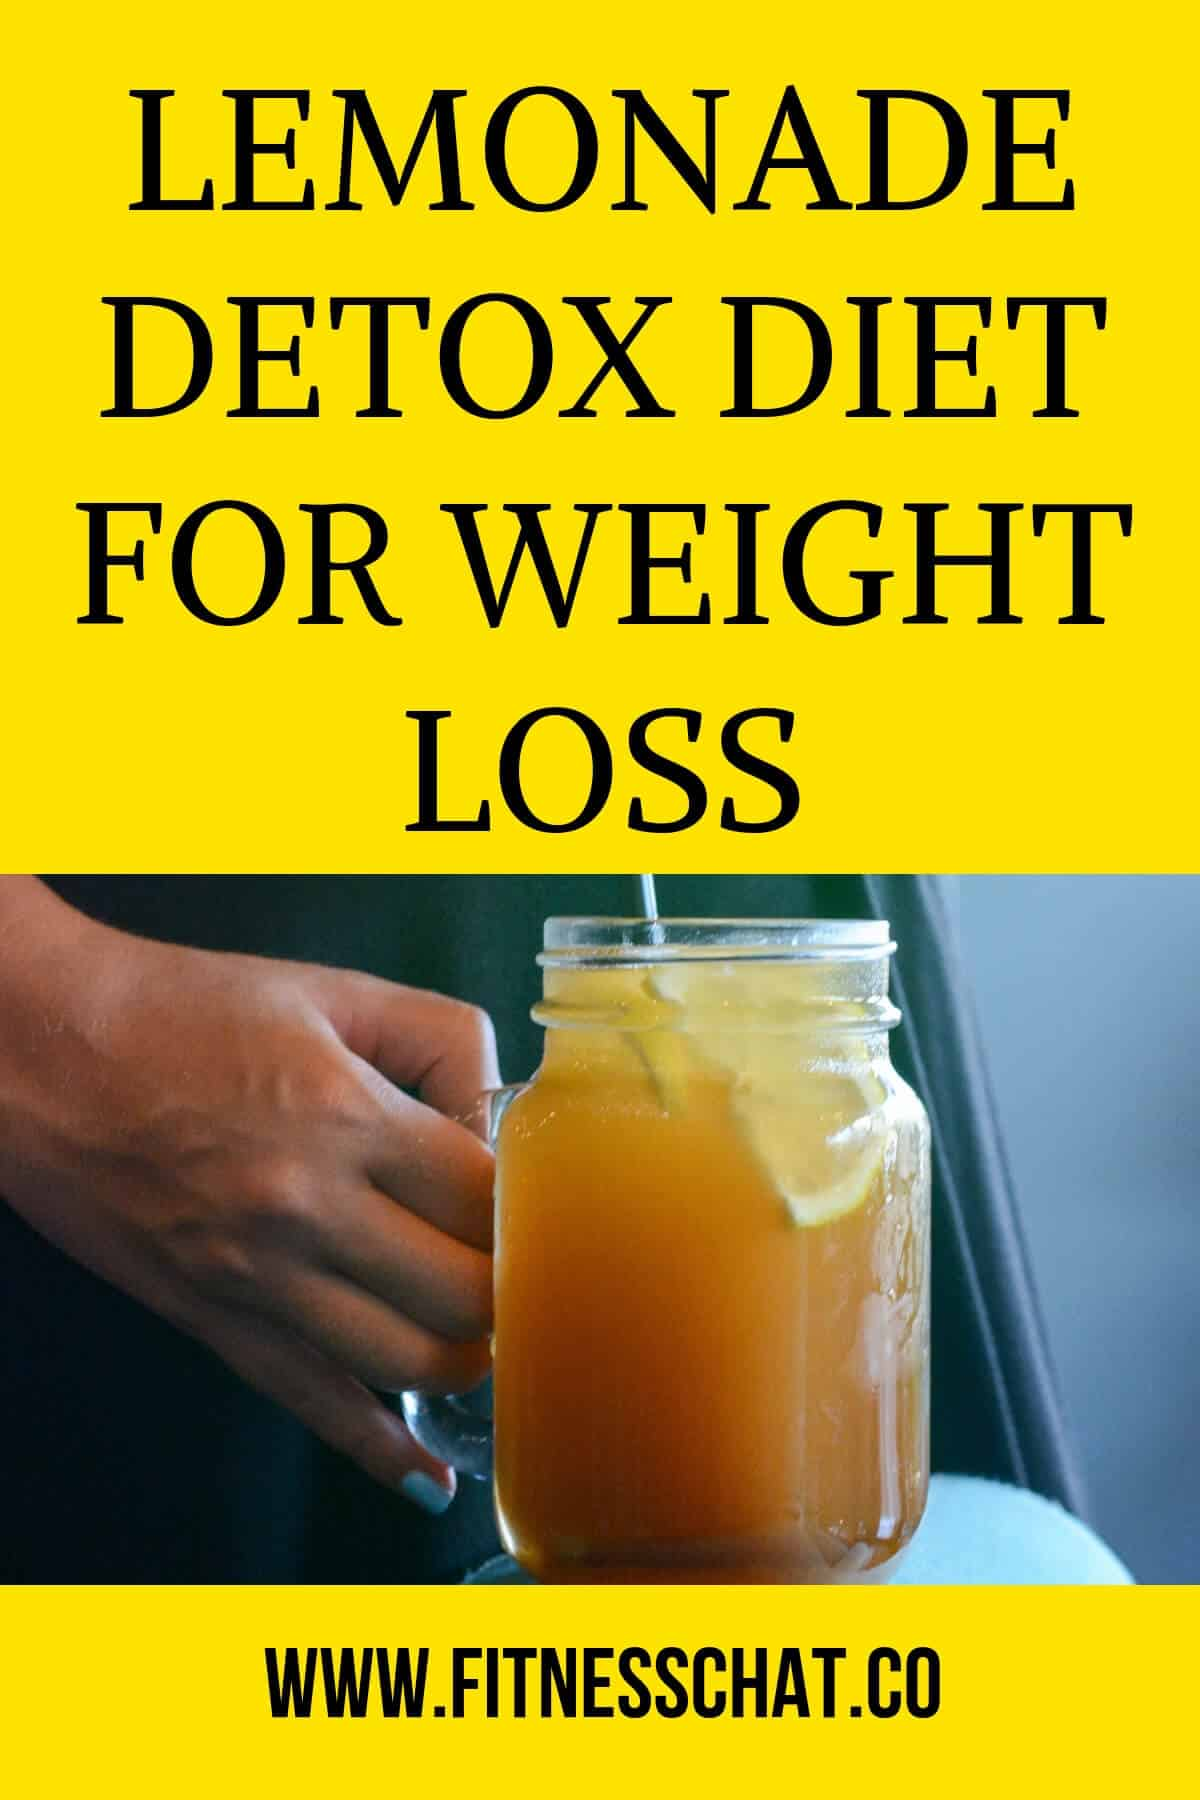 LEMONADE DETOX DIET FOR WEIGHT LOSS